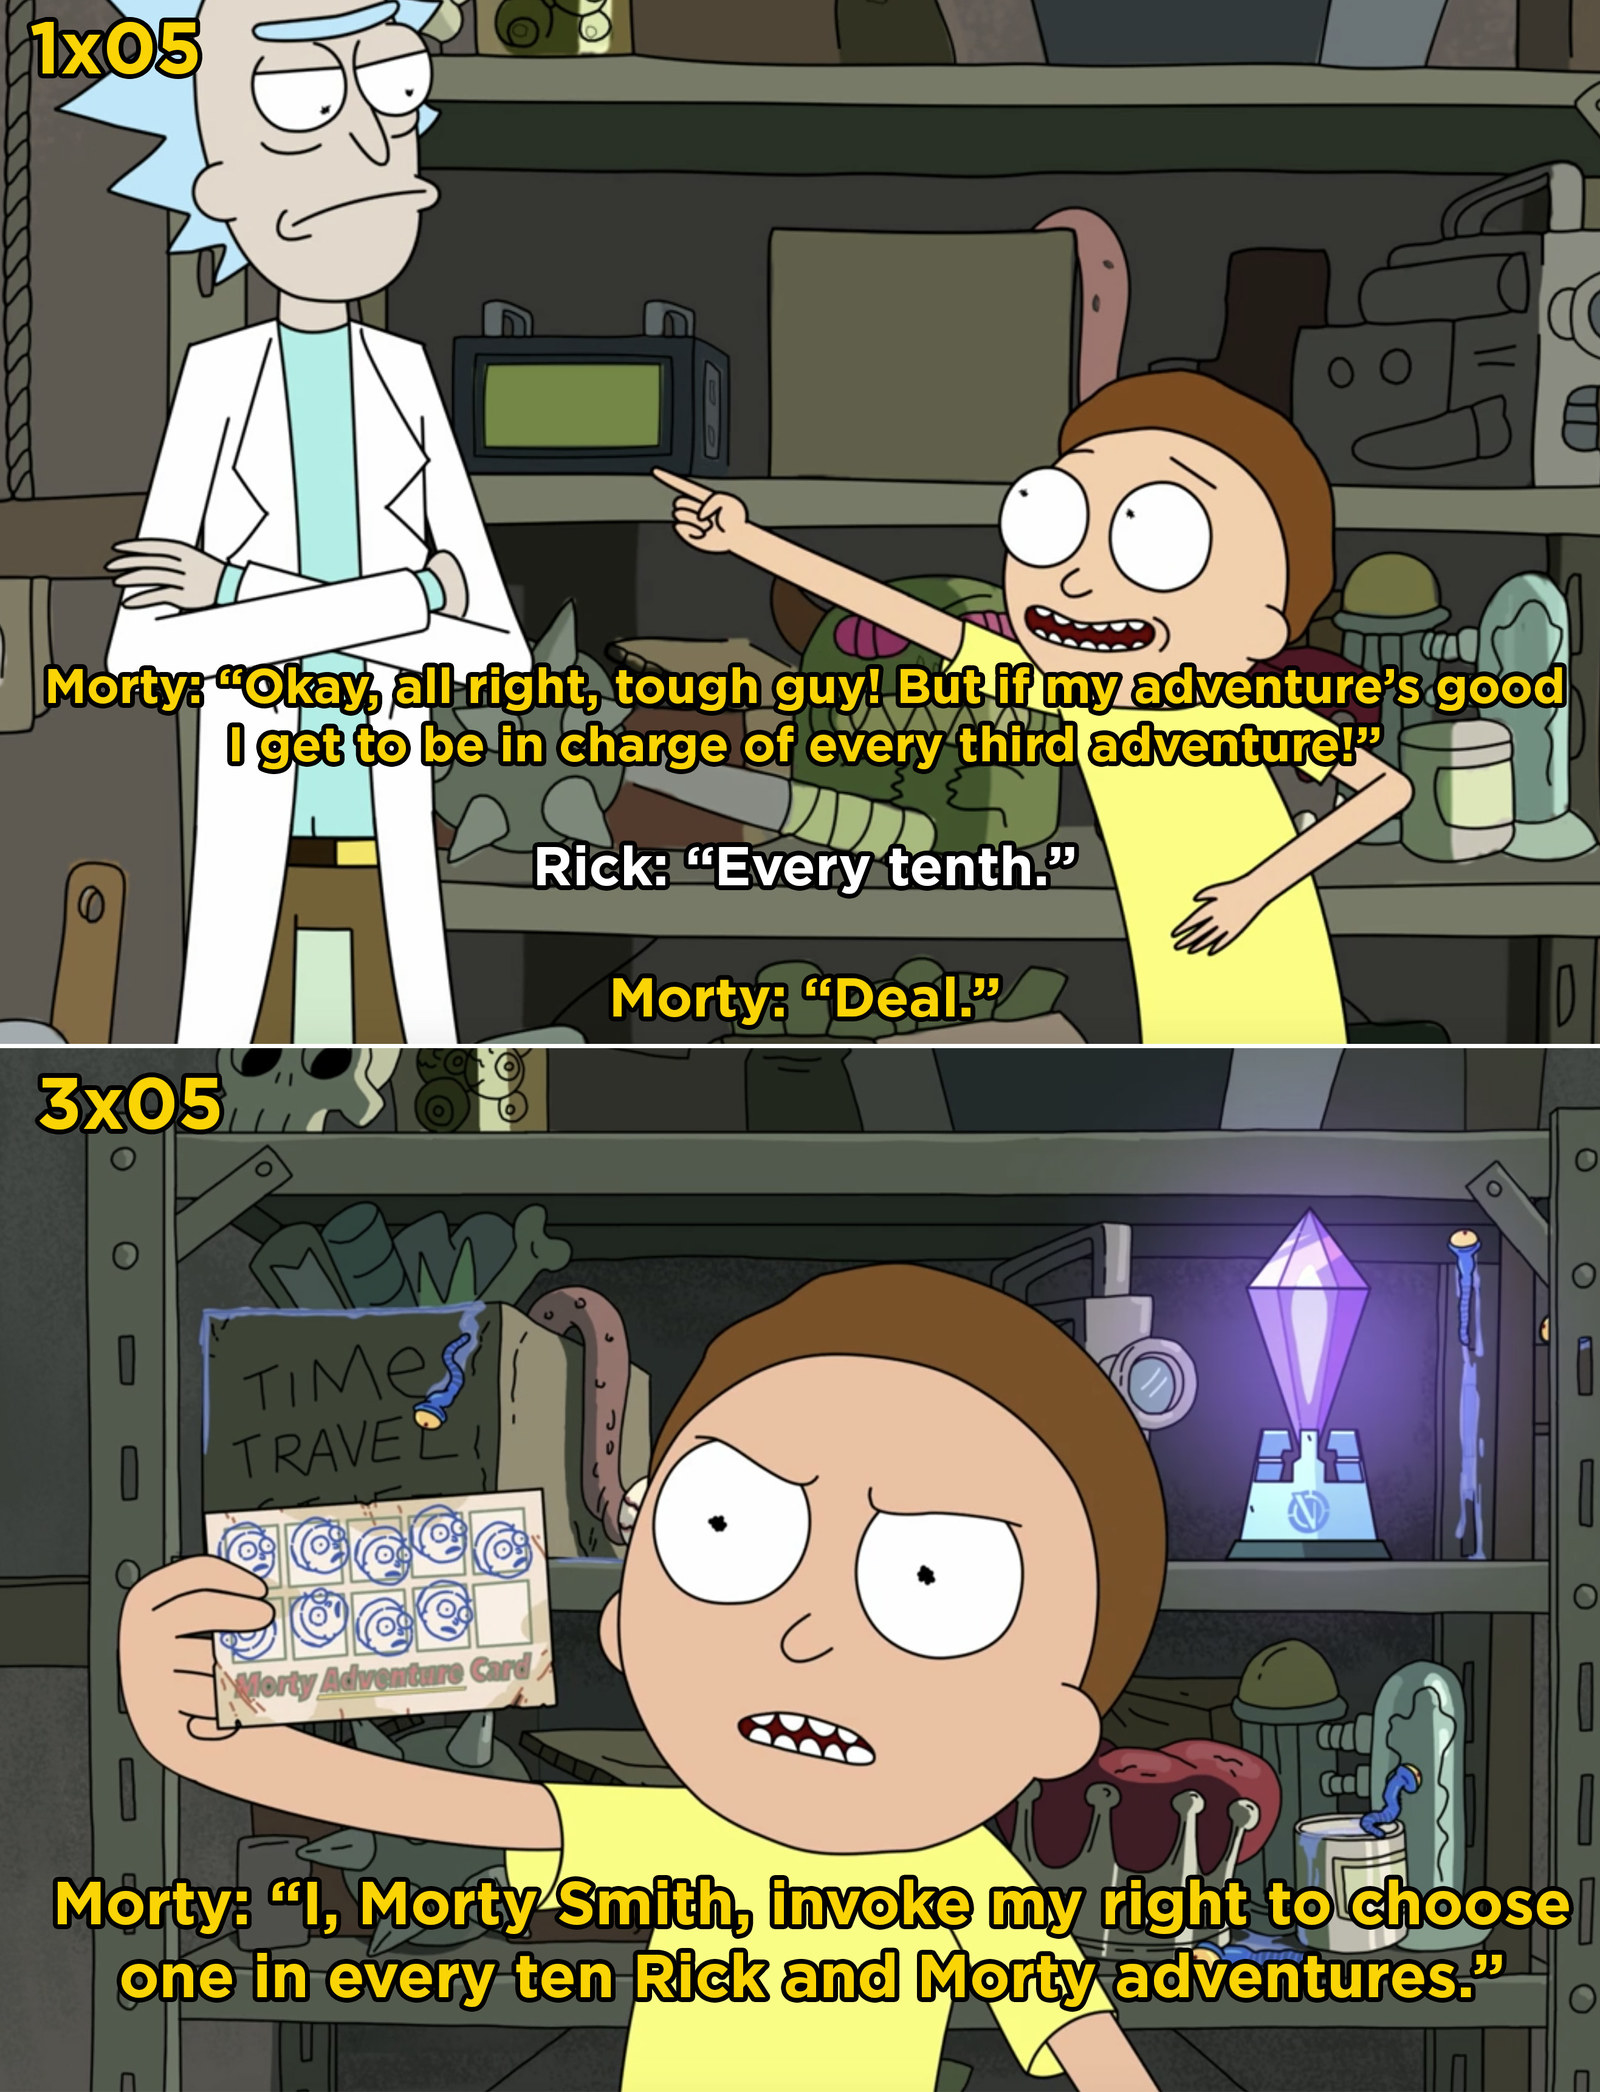 In Season 1 of  Rick and Morty , Morty makes a deal with Rick that he gets to choose every tenth adventure. In Season 3, Morty finally gets to choose an adventure.